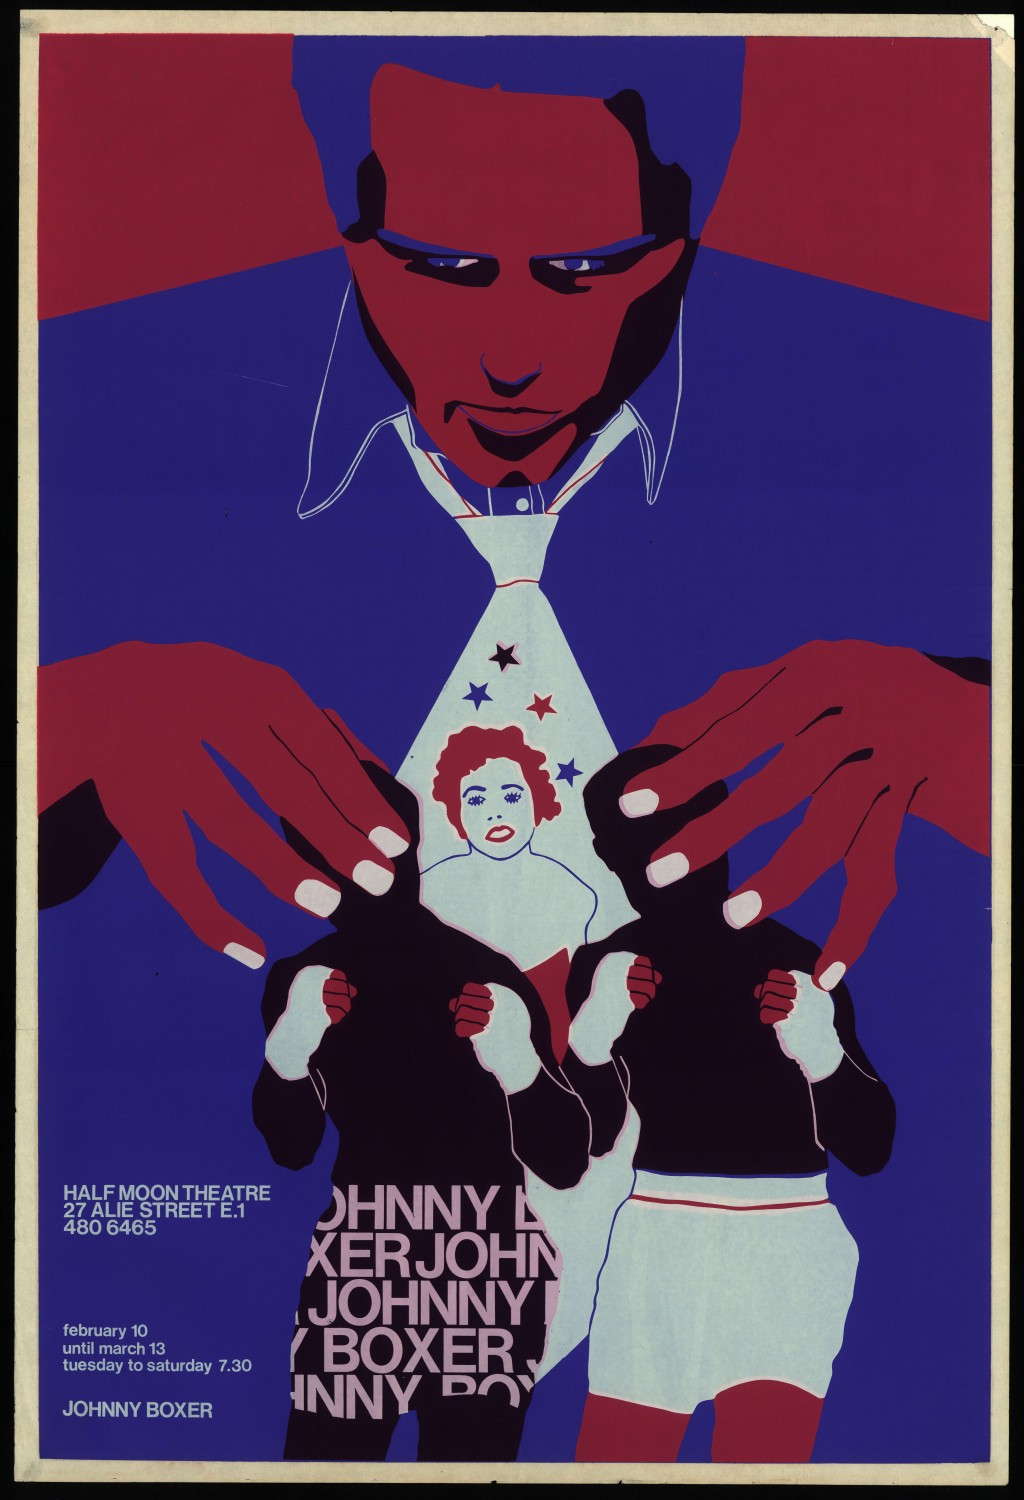 Johnny Boxer poster